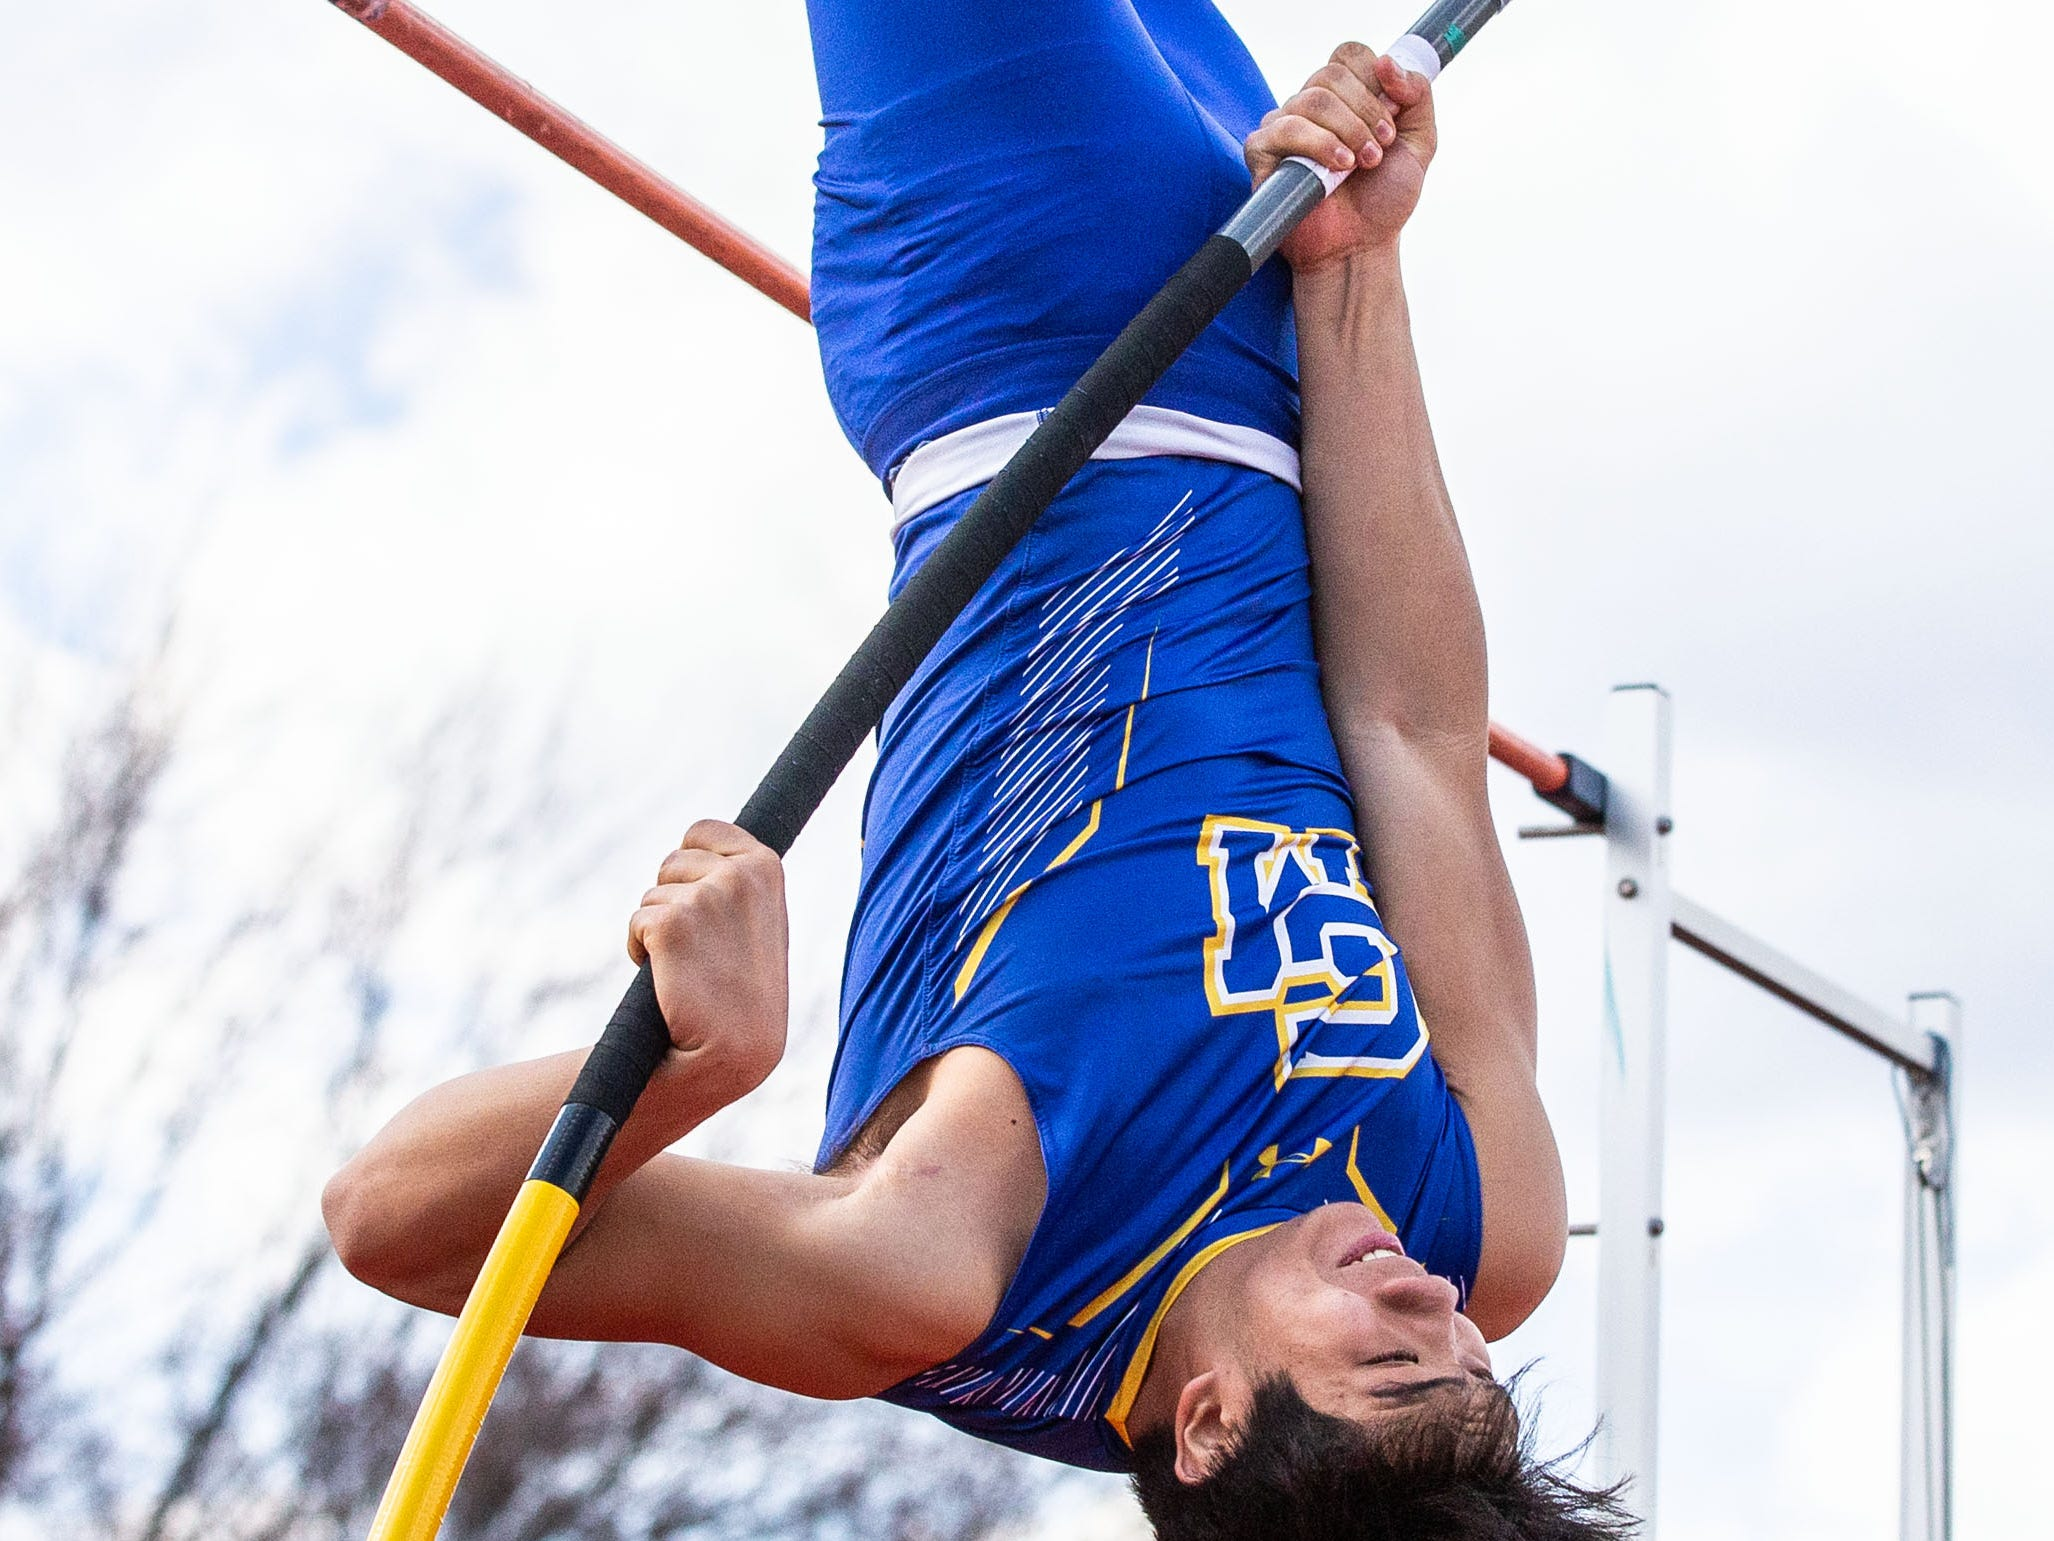 Catholic Memorial's Will Rothmeier competes in the pole vault during the Mike Gain 50th Annual Spartan Invitational at Brookfield East on Tuesday, April 9, 2019.